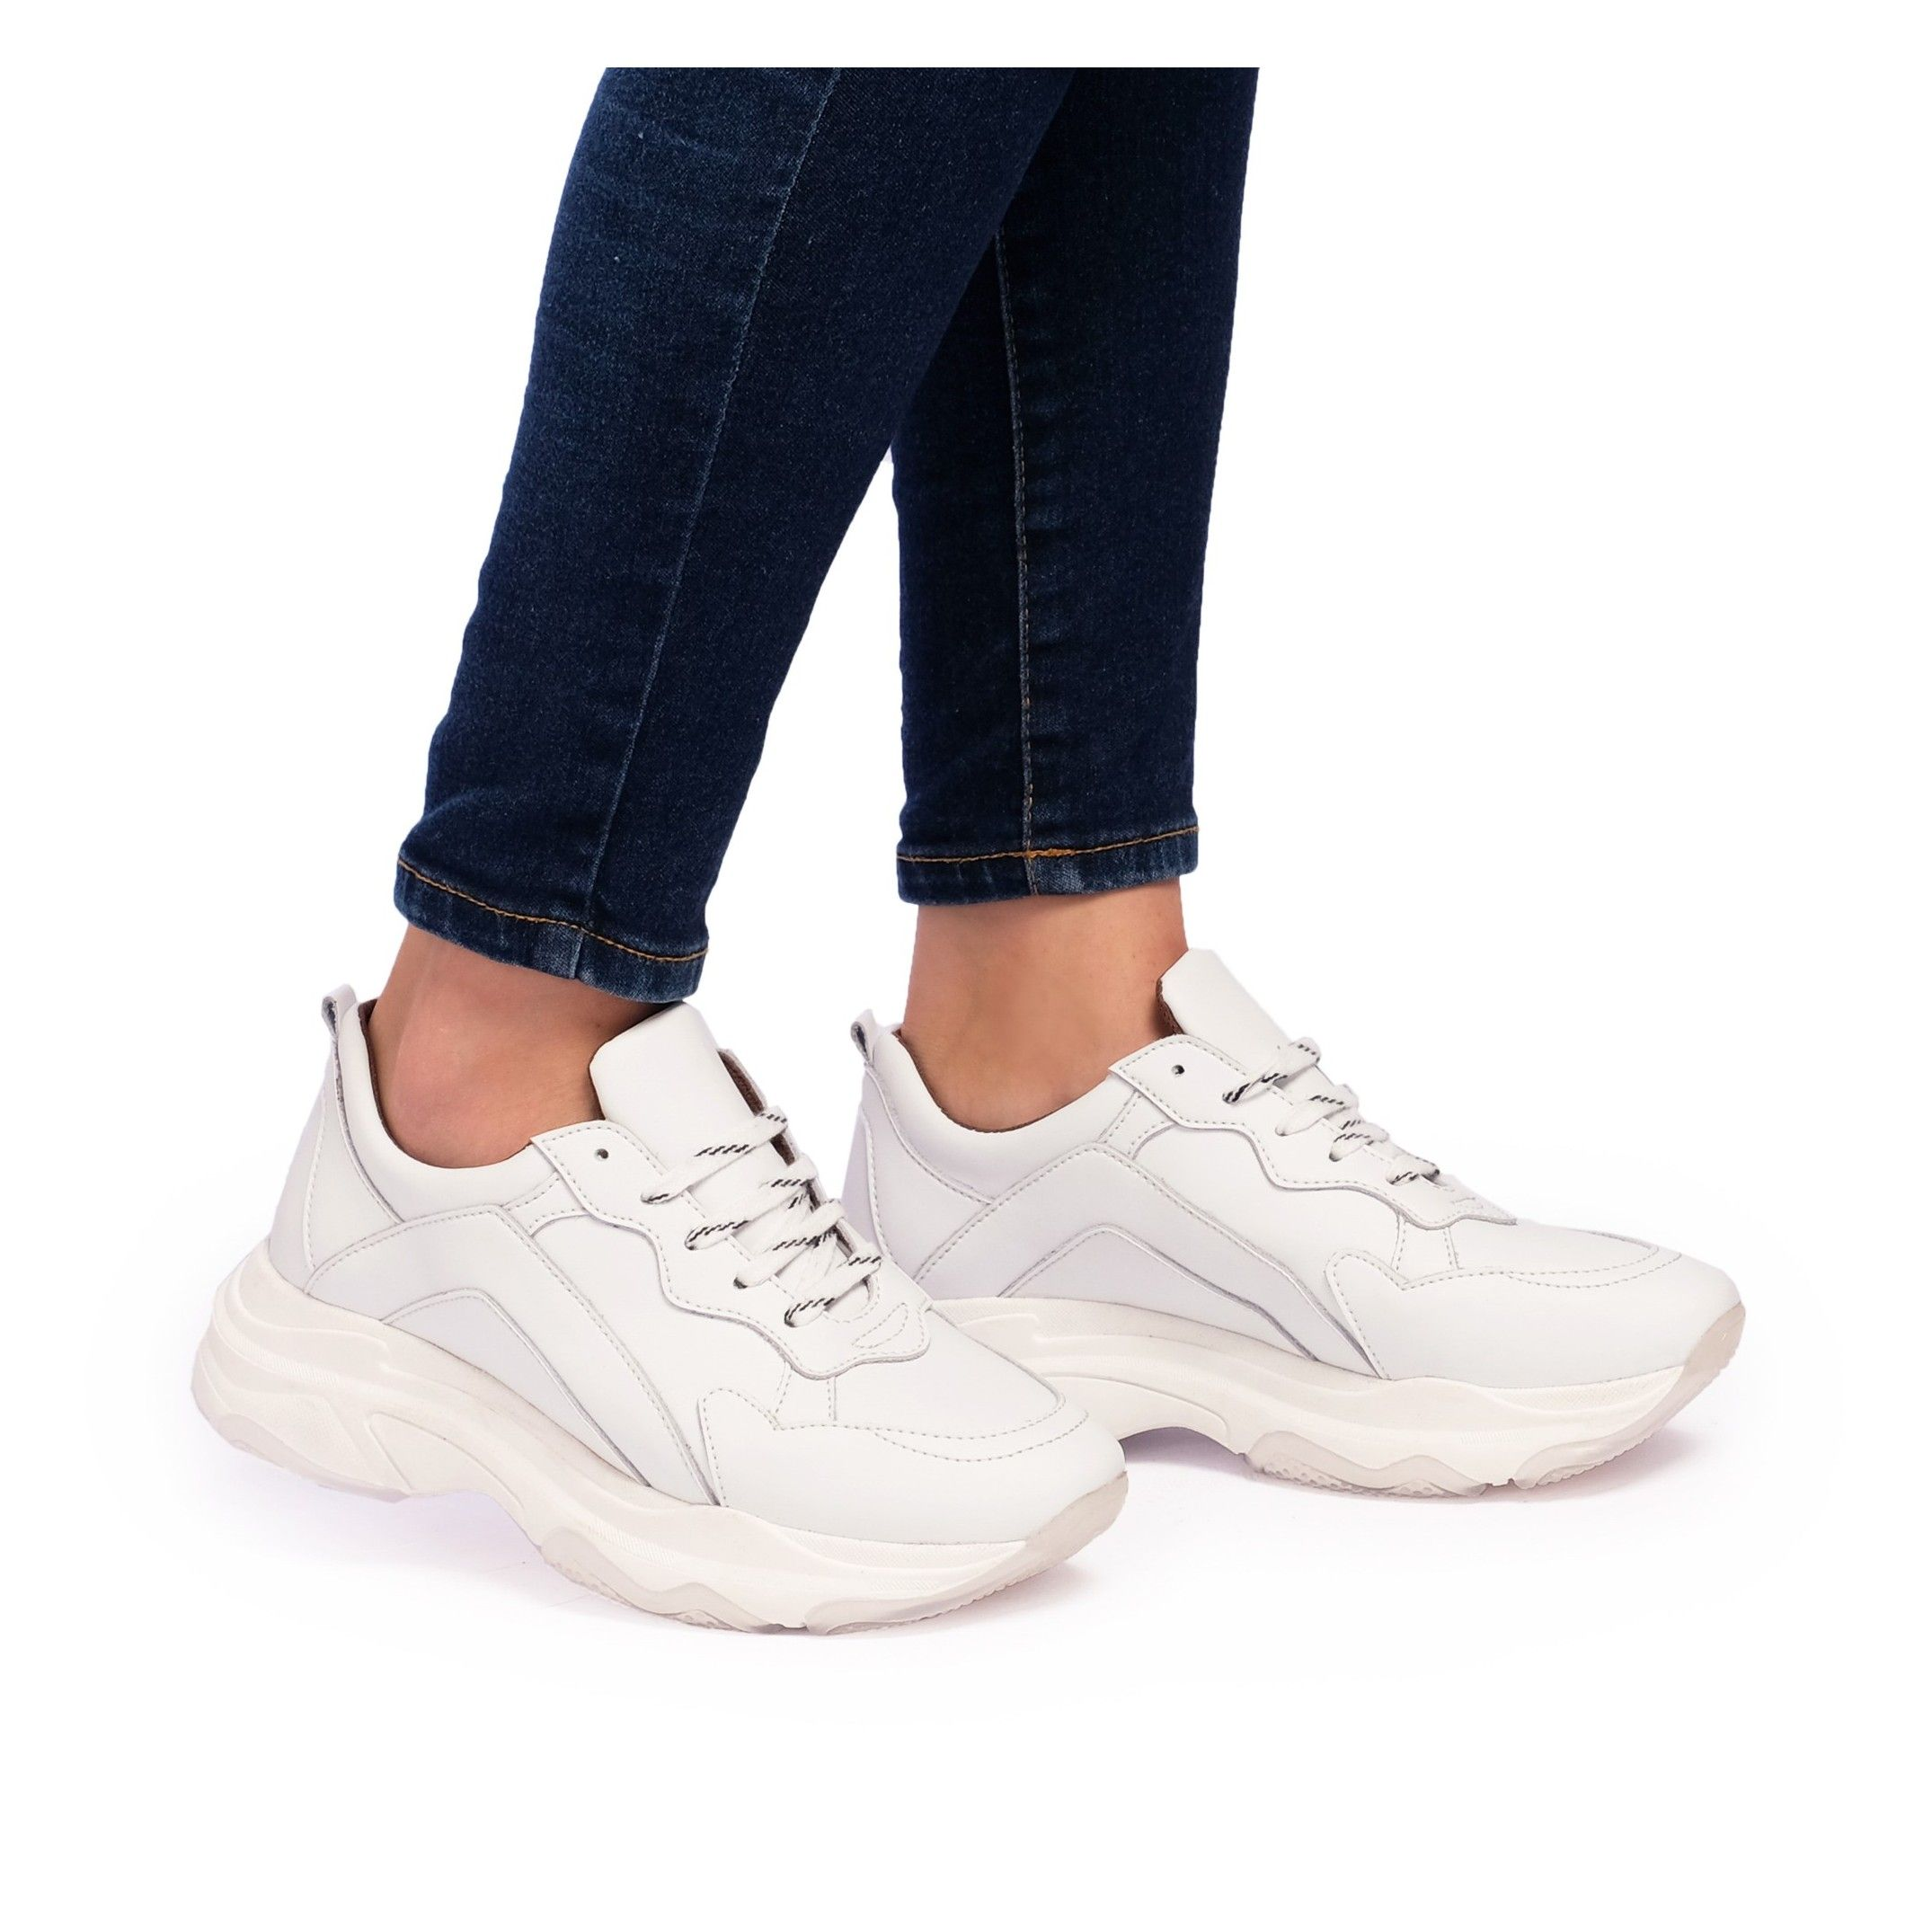 María Barceló Womens Lace-Up Sport Sneakers in White